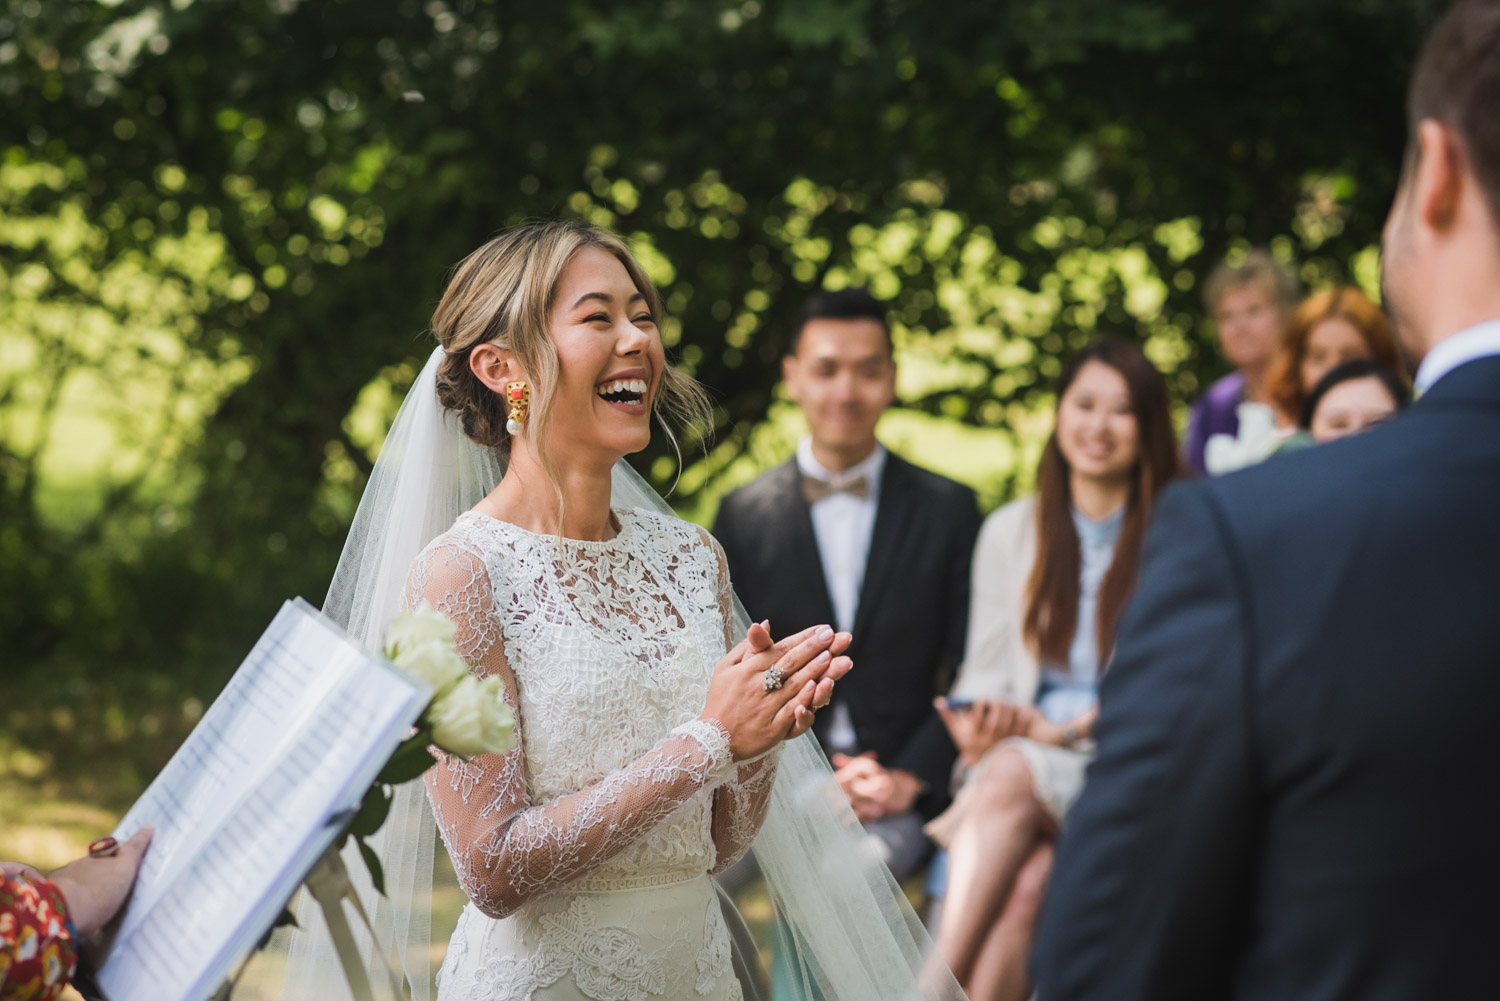 Outdoor wedding- happy, covid-tips, Carine Bea Photography bride